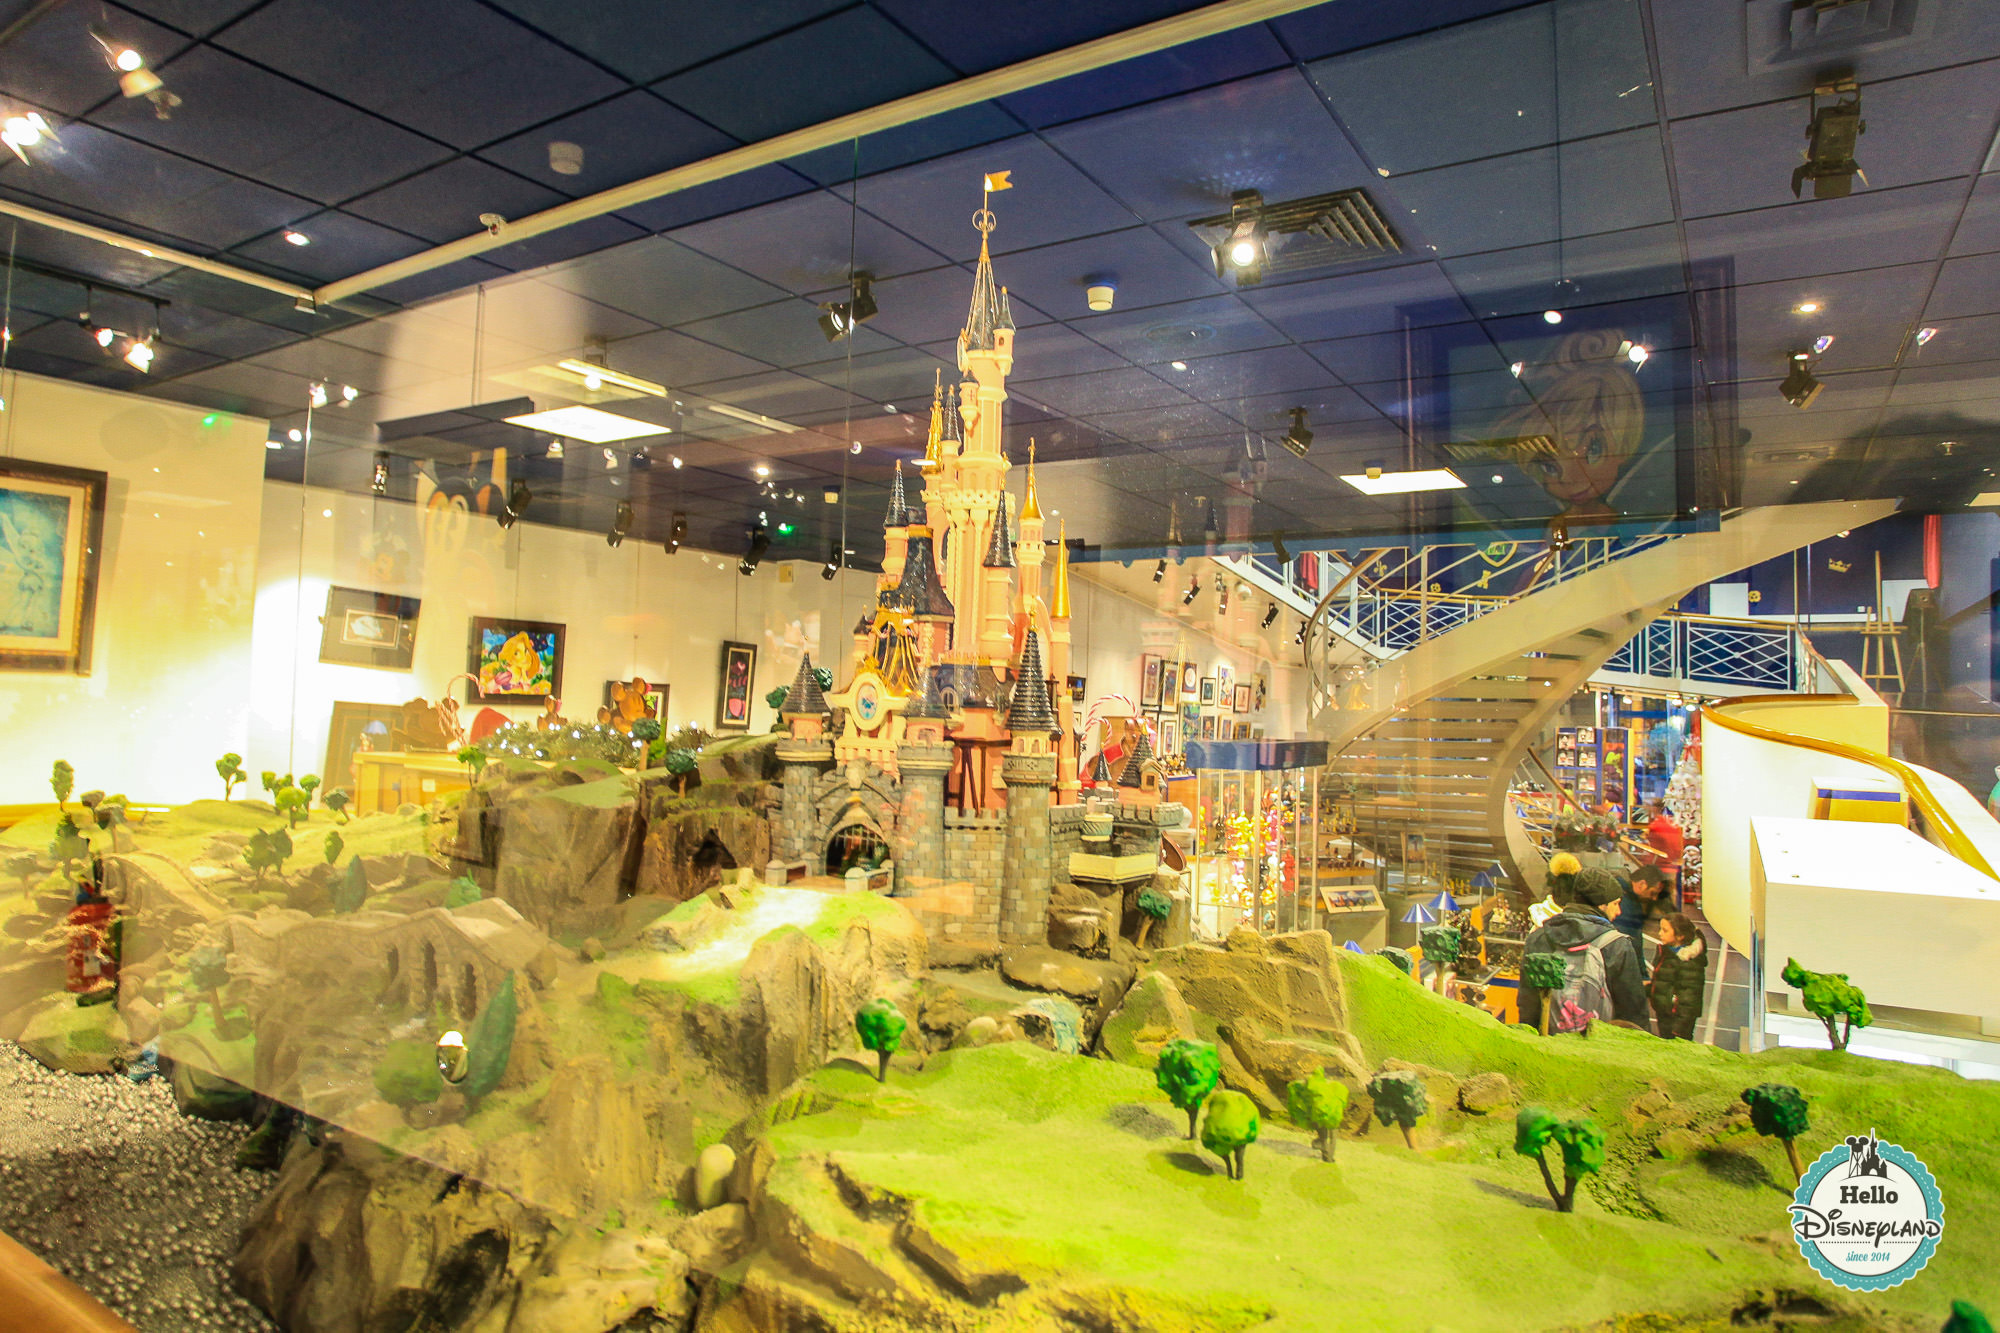 disney-gallery-disneyland-paris-8